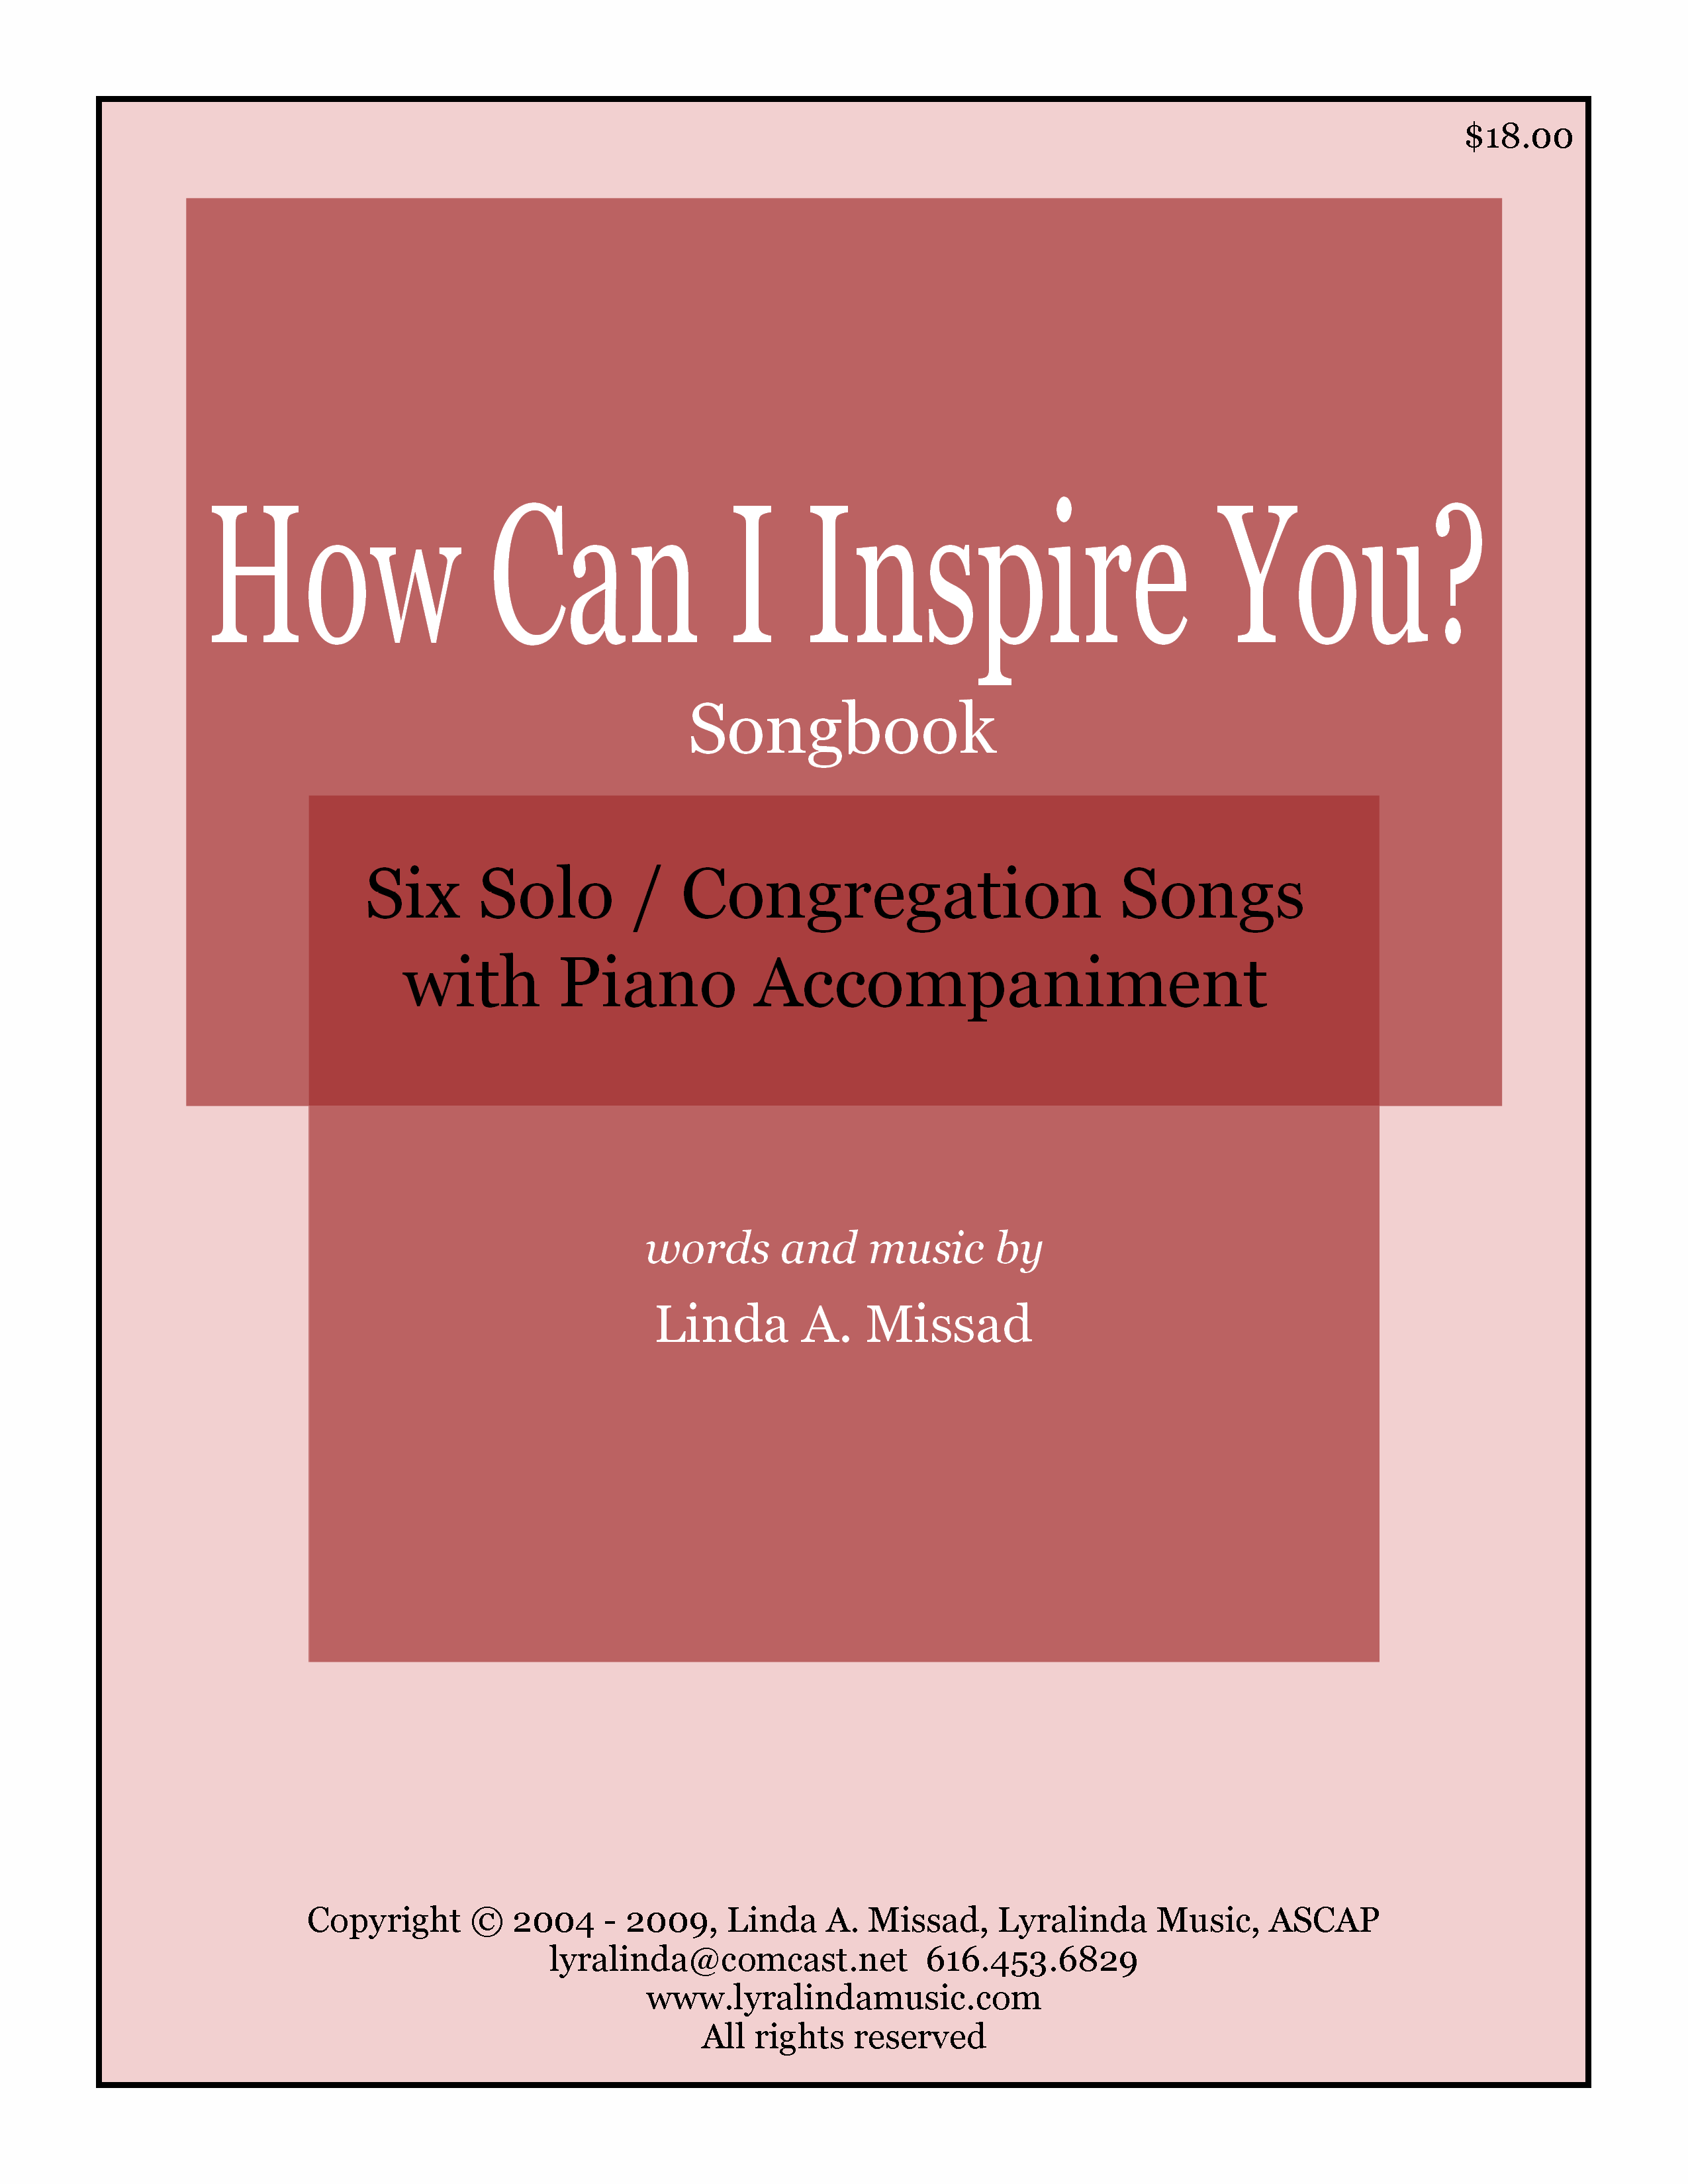 How Can I Inspire You - Songbook